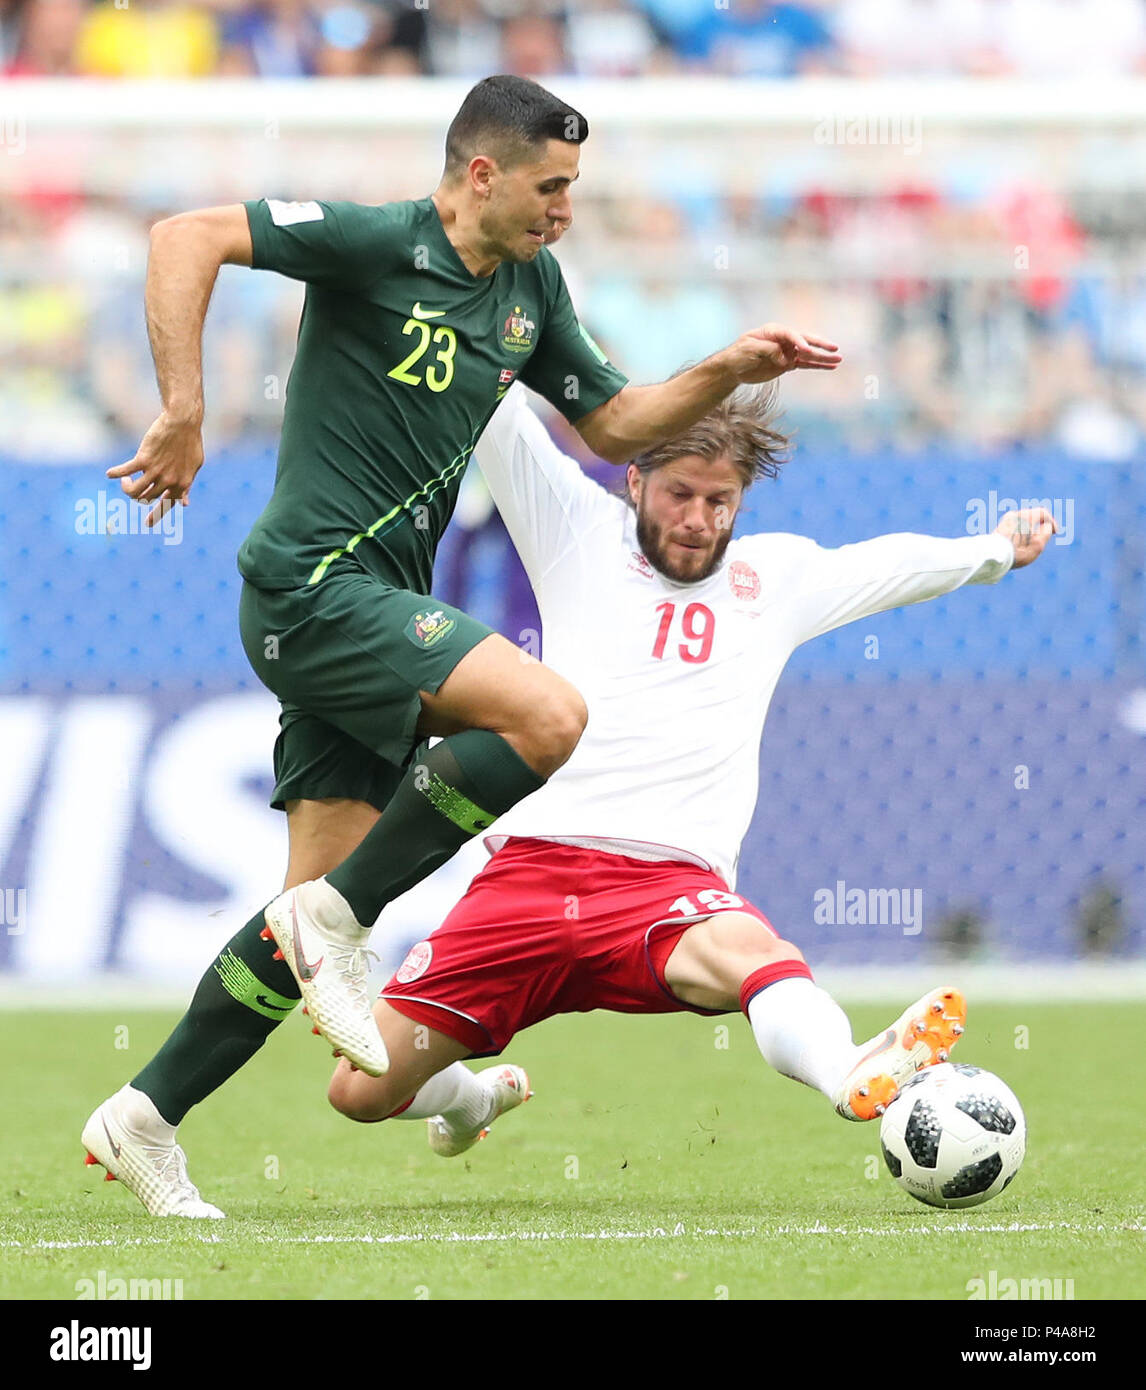 Samara, Russia. 21st June, 2018. Lasse Schone (R) of Denmark vies with Tom Rogic of Australia during the 2018 FIFA World Cup Group C match between Denmark and Australia in Samara, Russia, June 21, 2018. Credit: Ye Pingfan/Xinhua/Alamy Live News - Stock Image